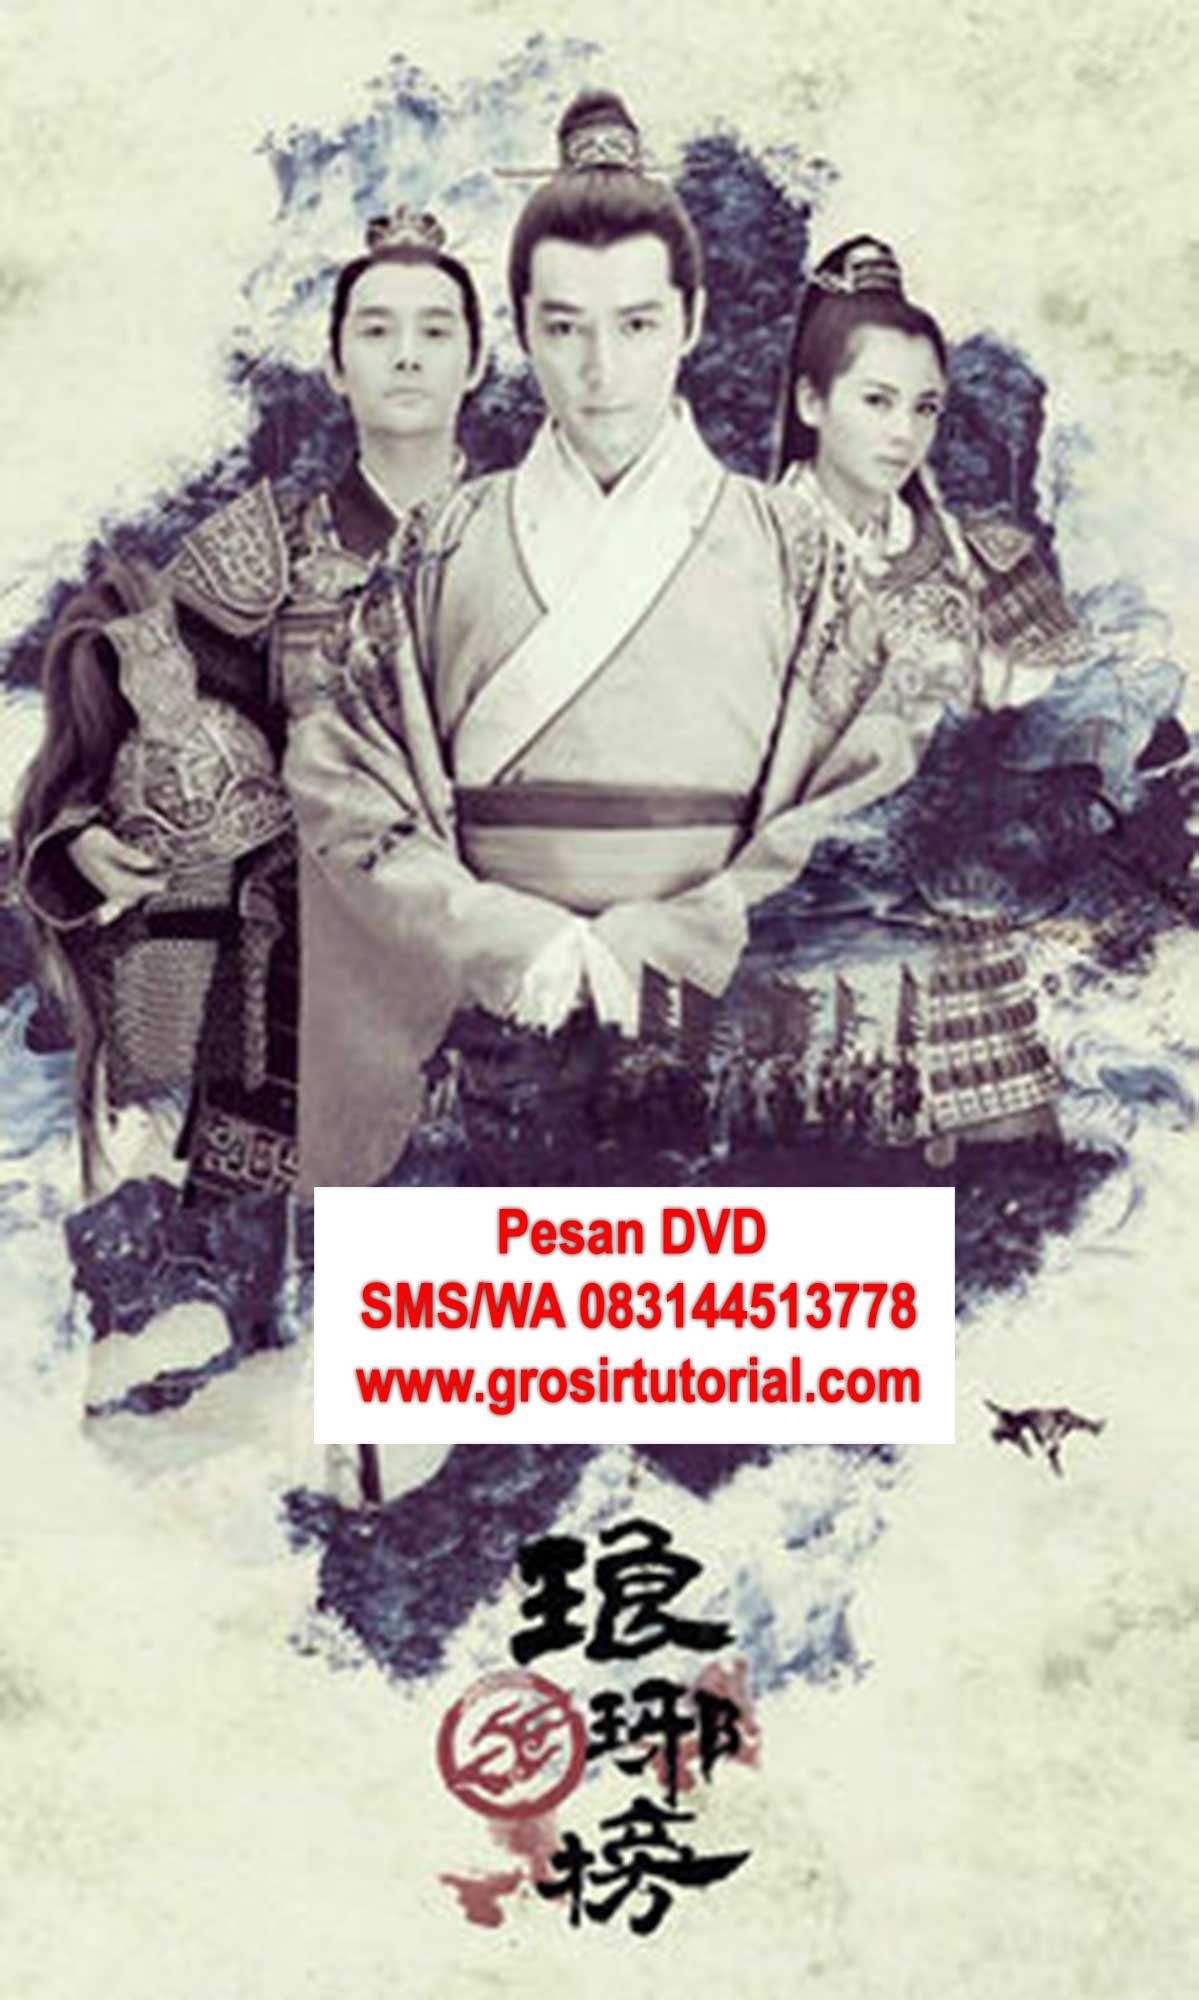 Beli-DVD-Silat-Mandarin-The-Rankings-Of-Lang-Ya-Bang